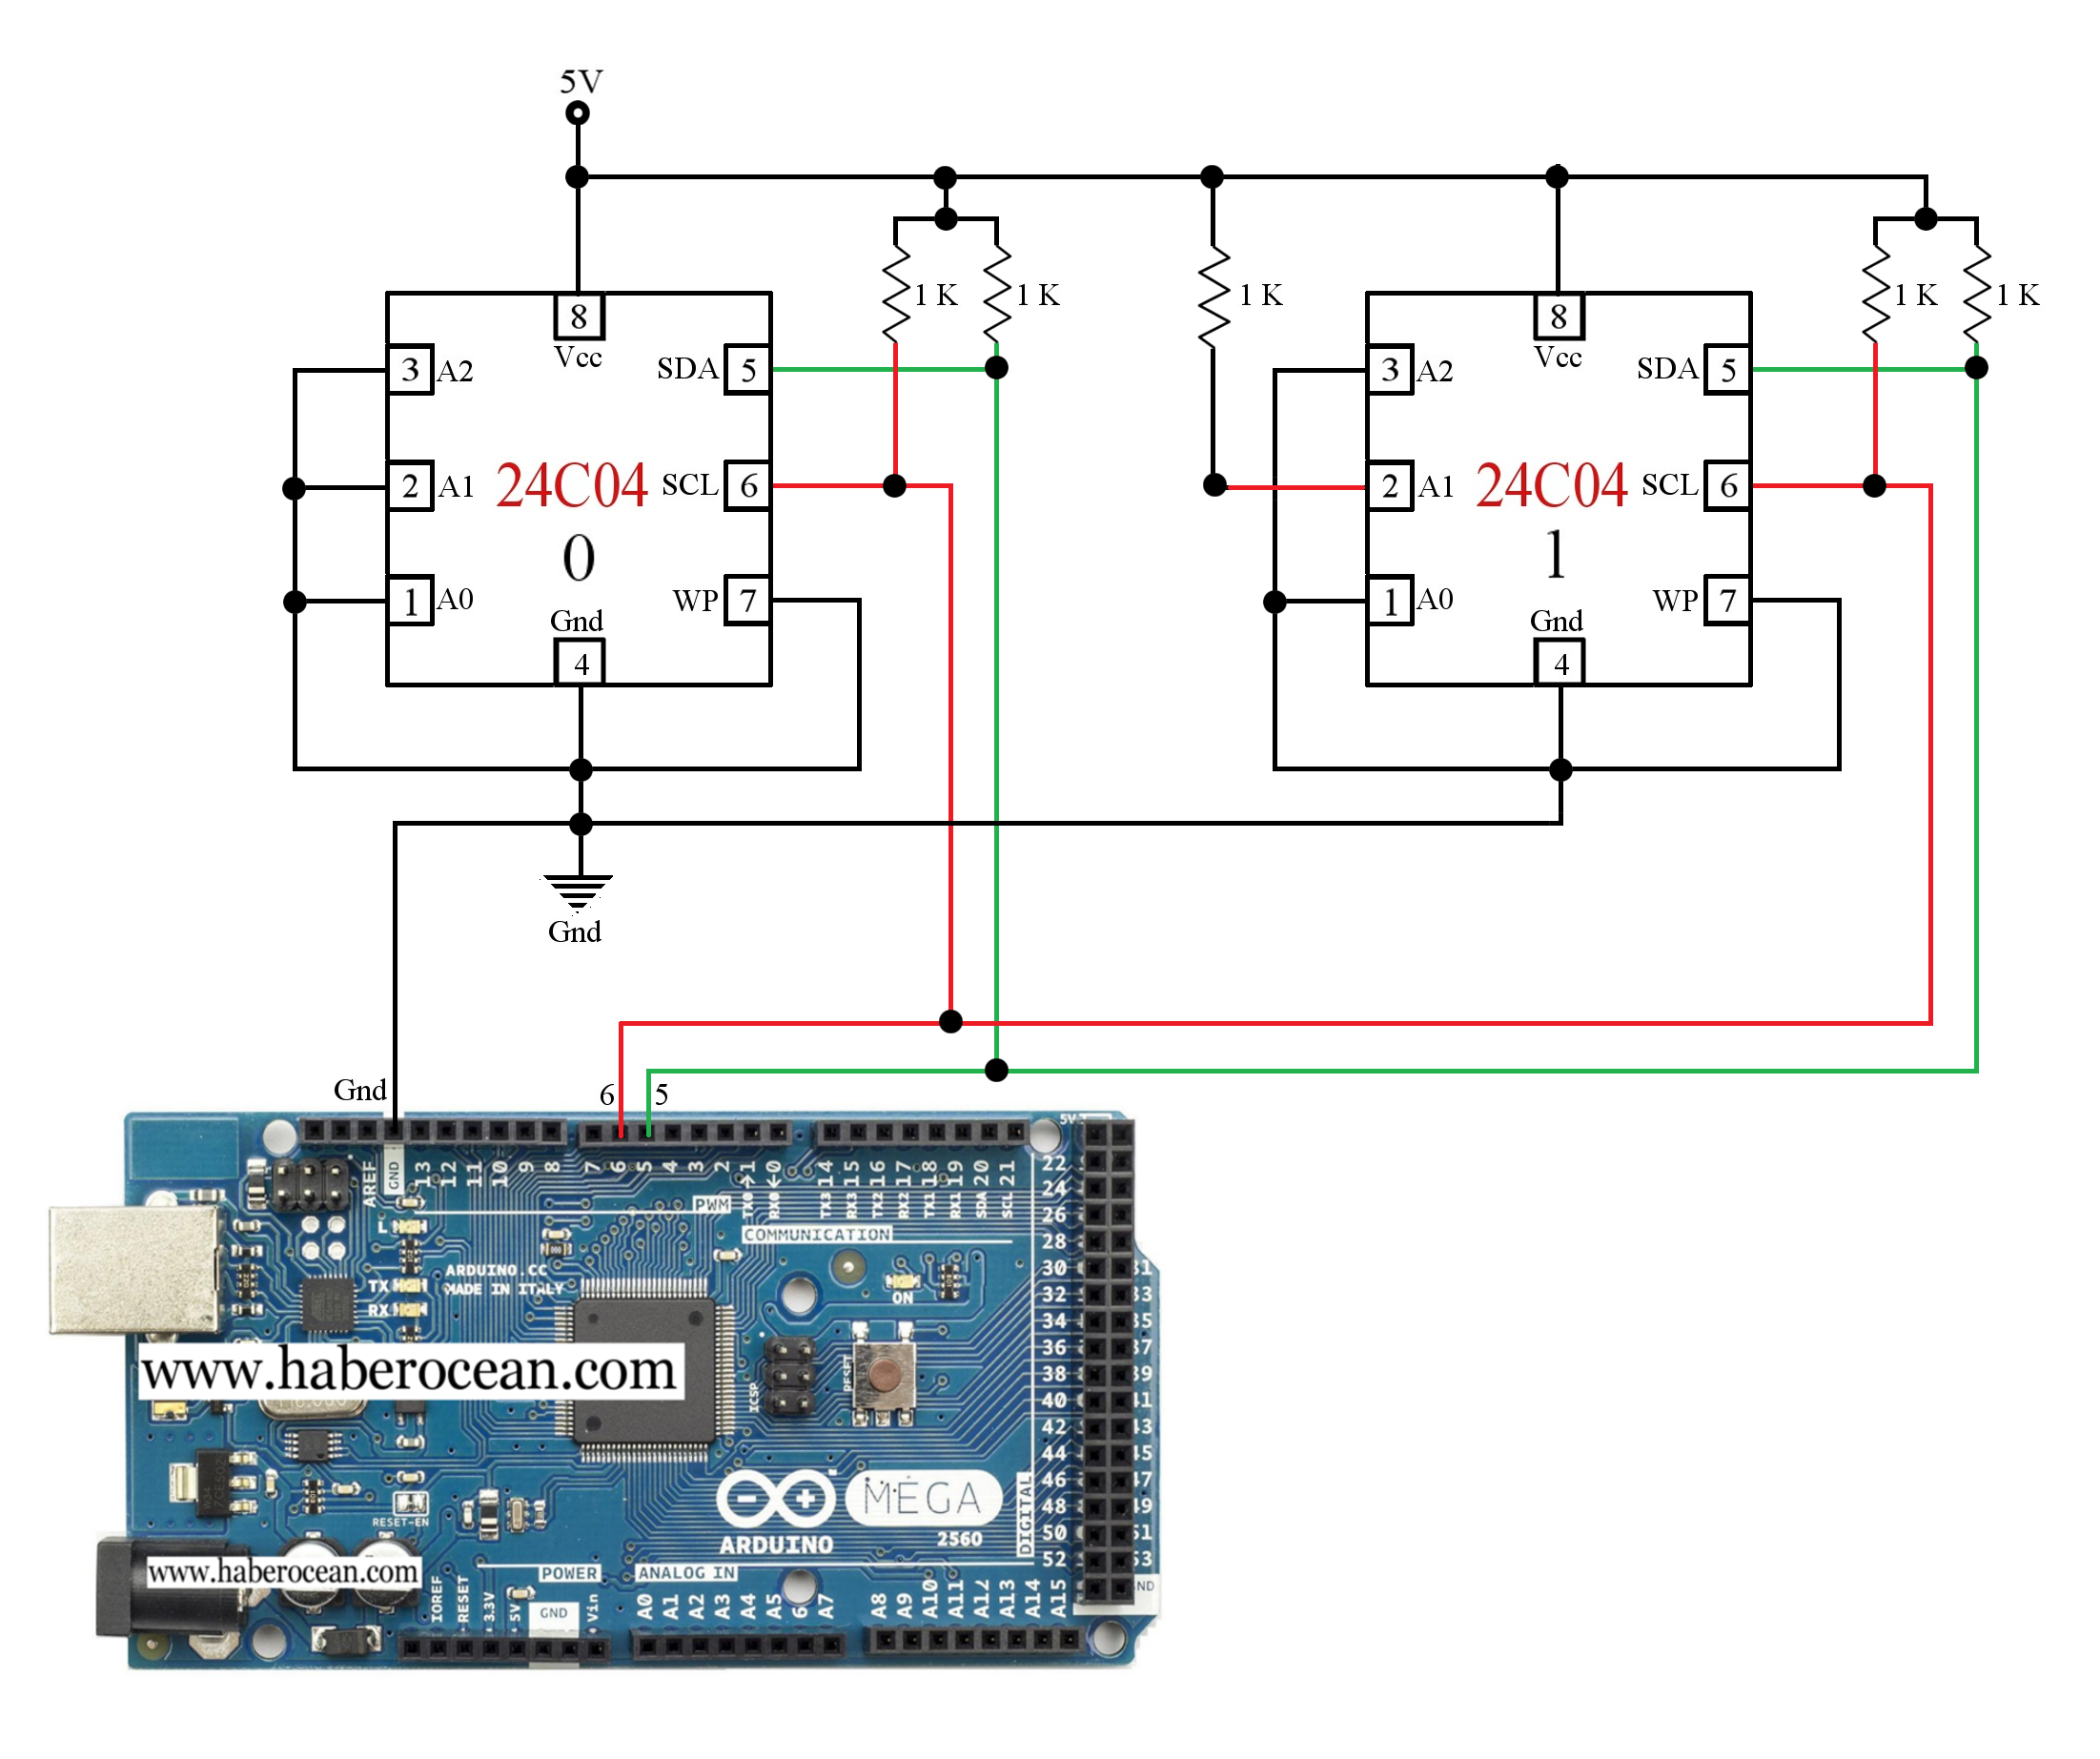 Pin By Febin Antony On My Funny Electronics Arduino Circuit Basic Circuitry Of Metal Detection Source To Control Two 24c04 Ics Through Single Bus System Using Mega Read More At